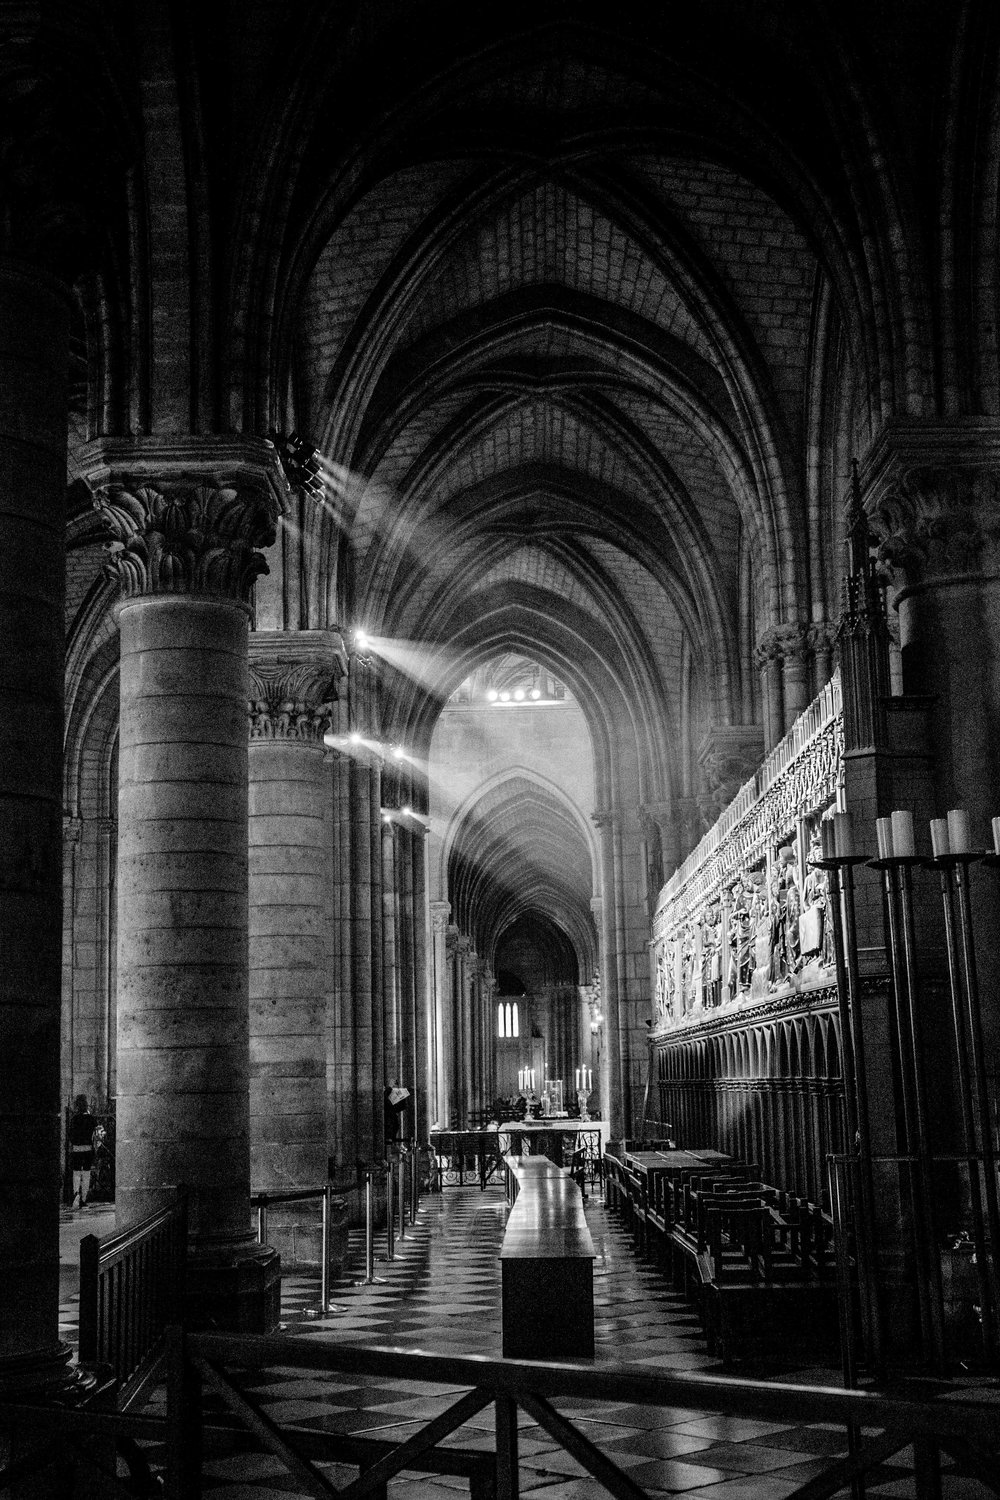 Interior shot of Notre Dame